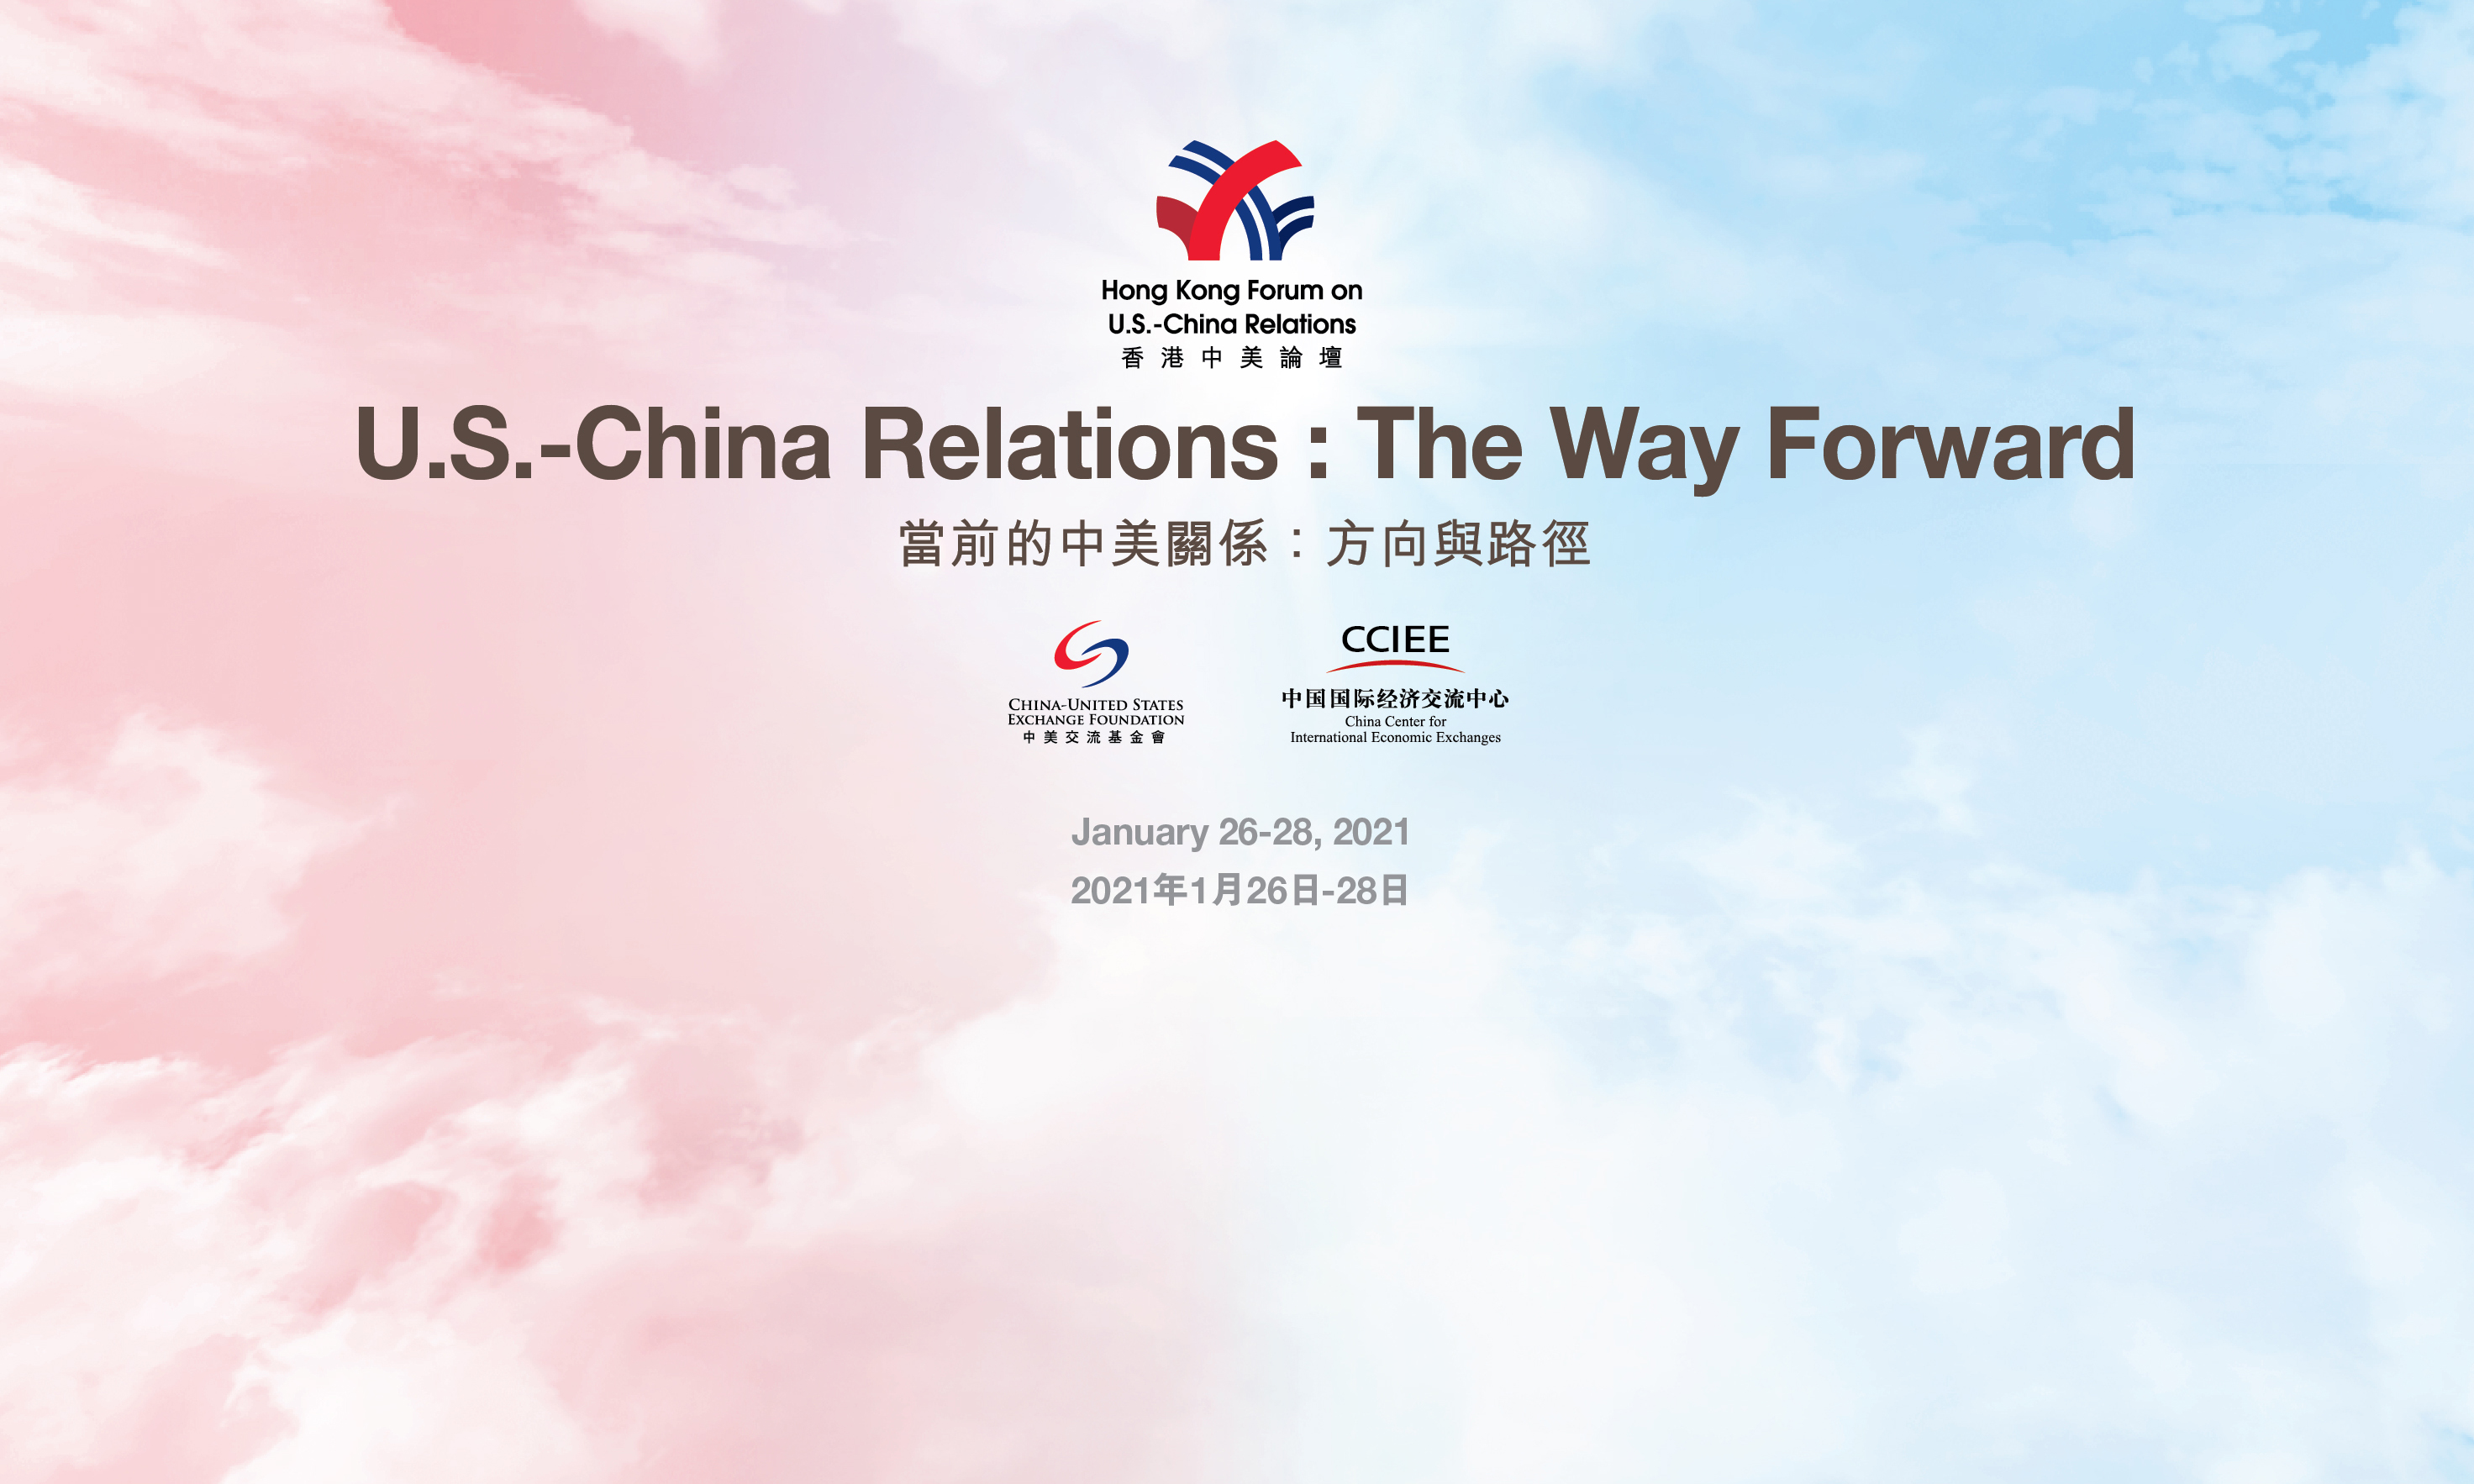 2021 Hong Kong Forum on U.S.-China Relations